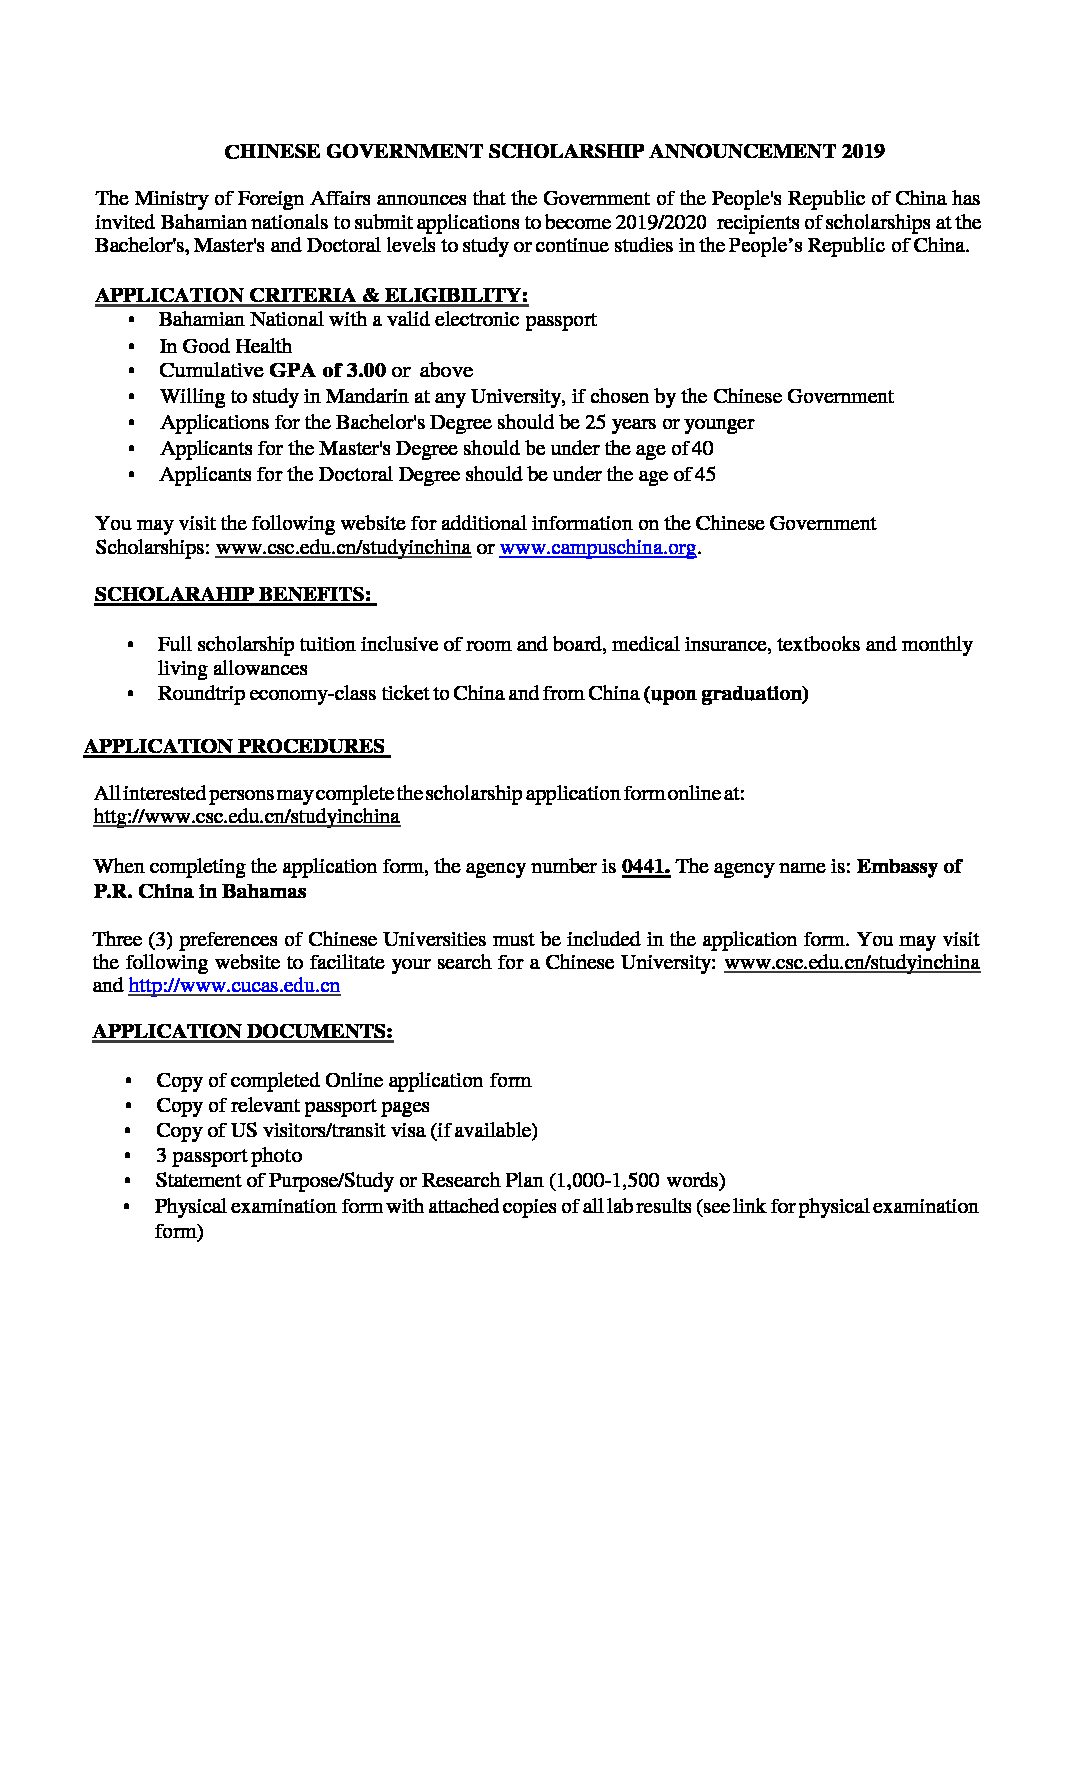 Personal Statement For Scholarship 500 Words Pdf